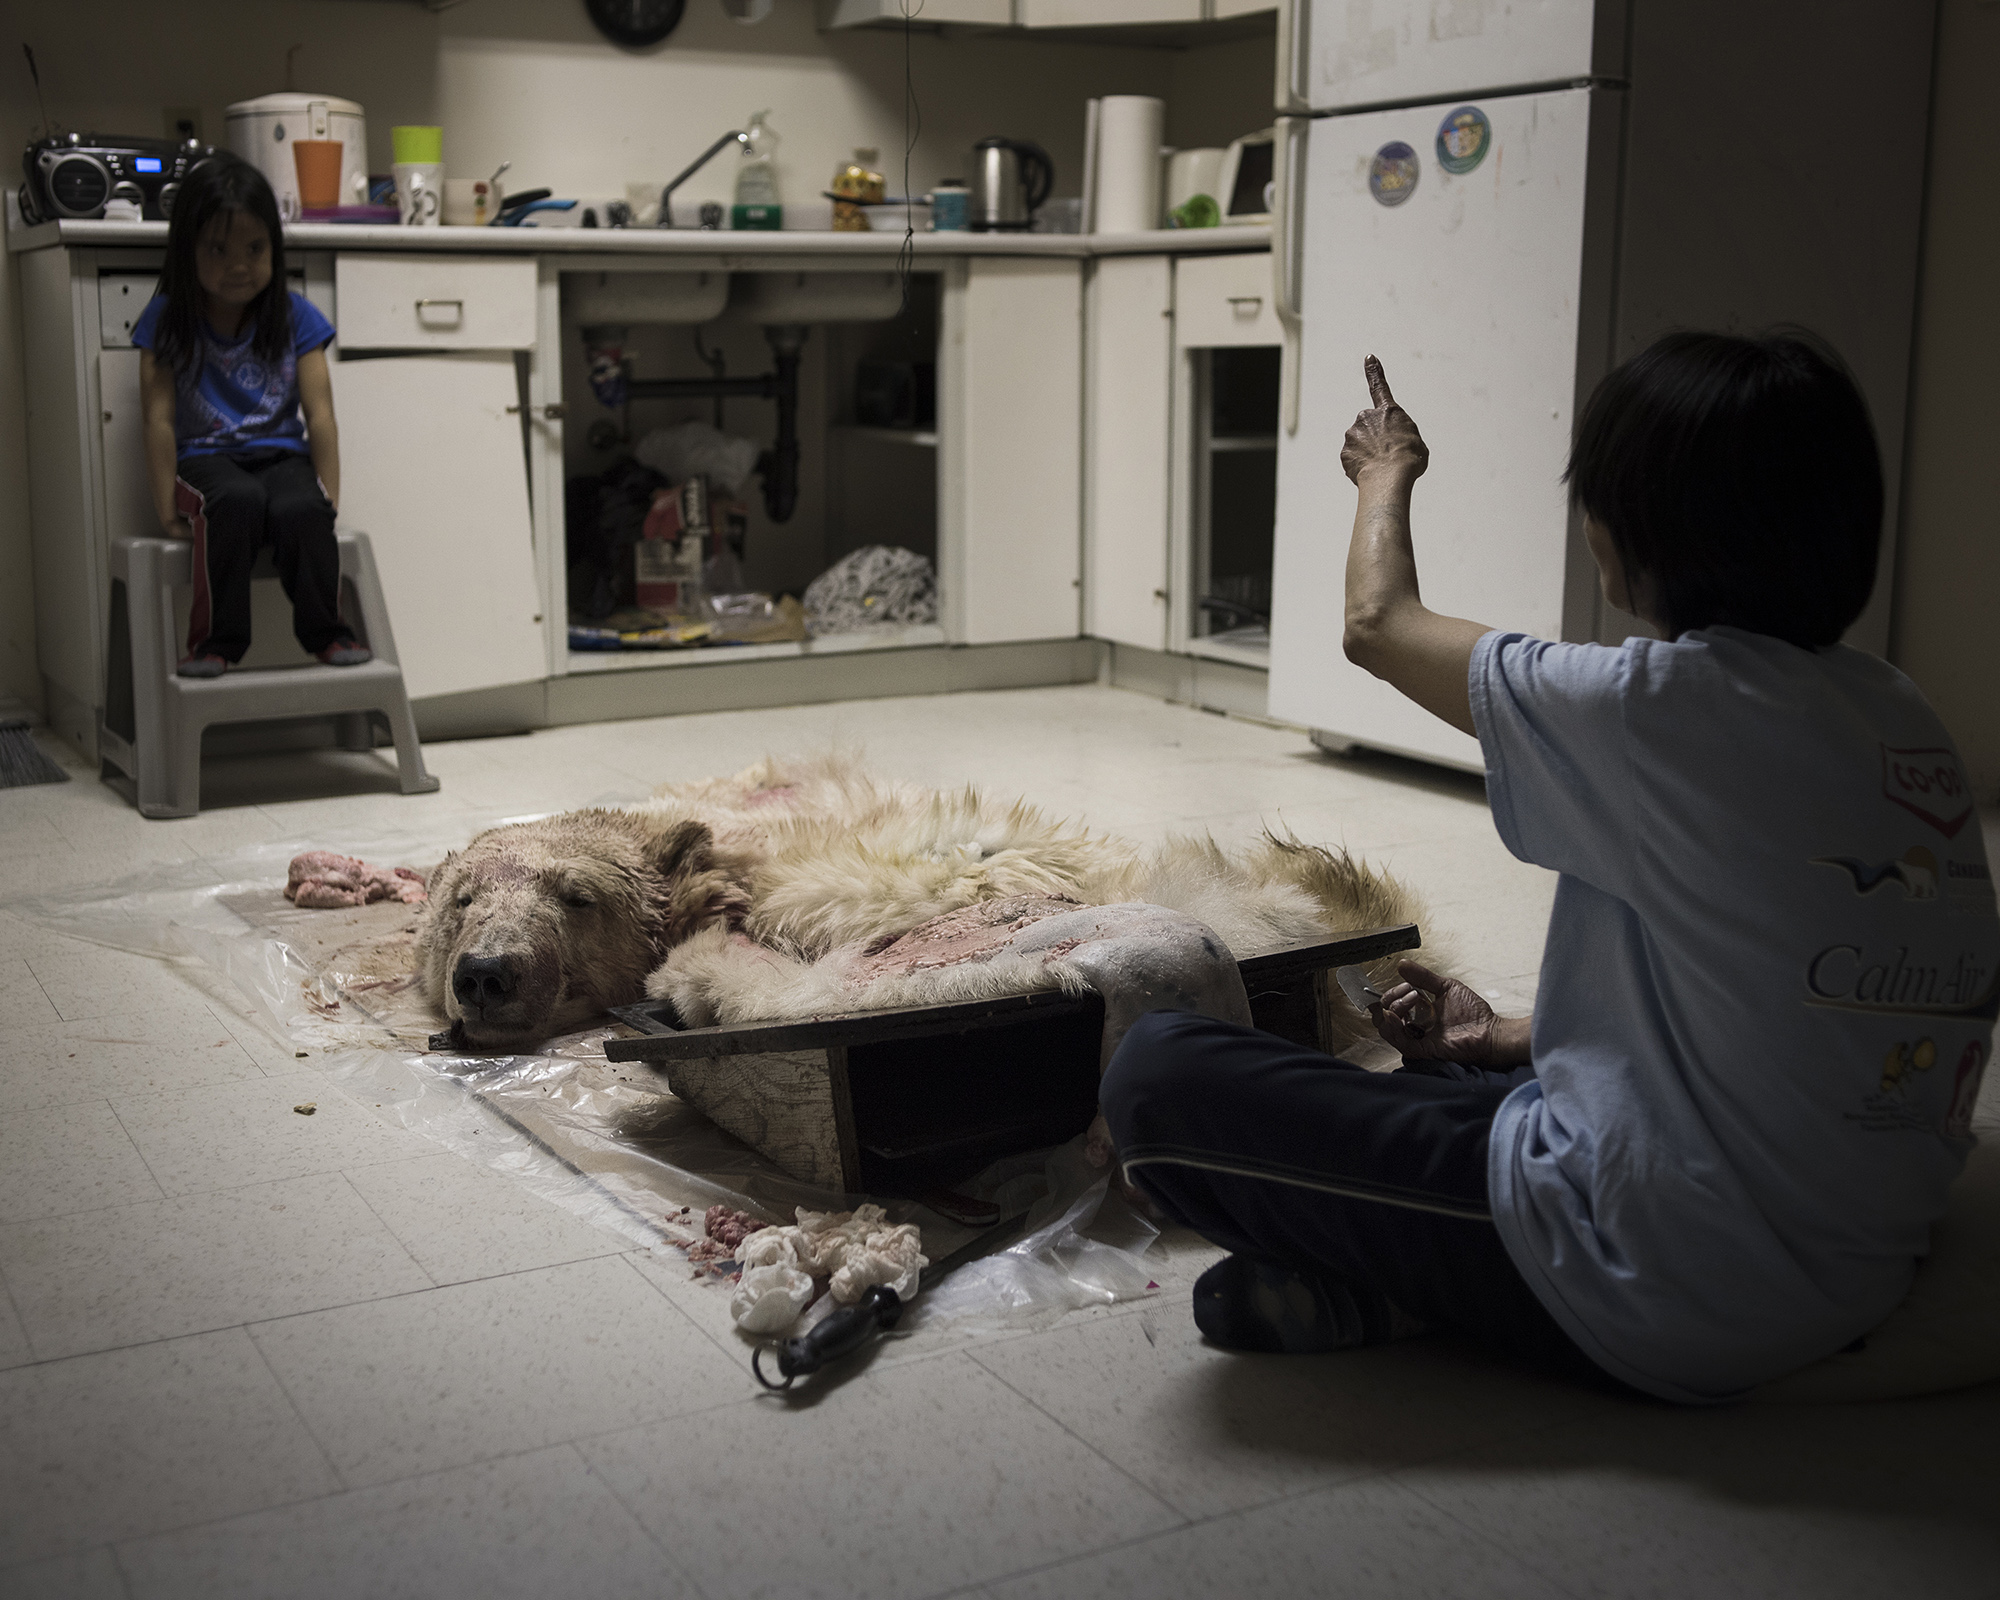 A girl watches her grandmother remove the fat from the polar bear pelt. One pelt can easily go for $10,000 if it's in good condition. More than half of the Inuit diet consists of fresh game. However, currents in the water draw trash and pollution from all over the world up to the Arctic, which gets absorbed into marine mammals' meat and fatty tissue. (Camilla Andersen/GroundTruth)